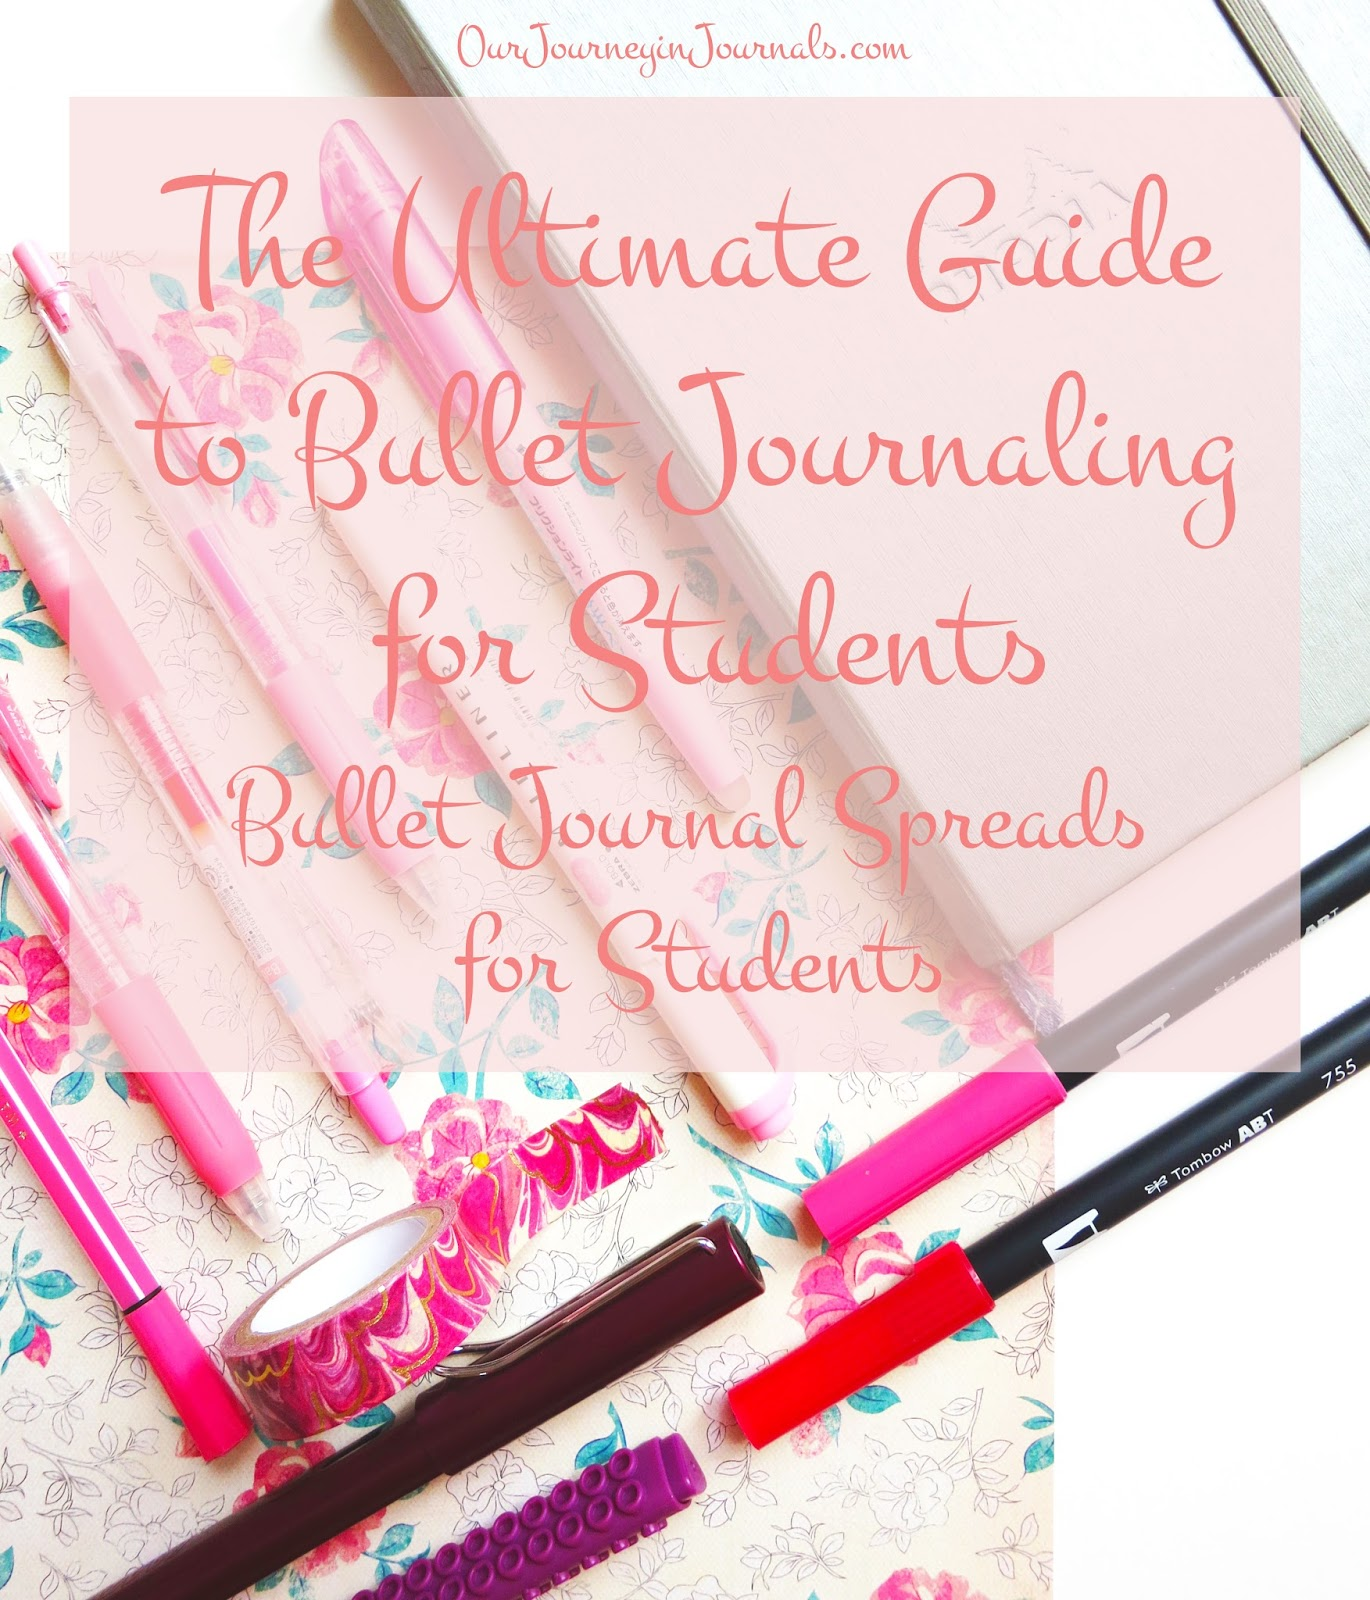 Our Journey in Journals: The Ultimate Guide to Bullet ...